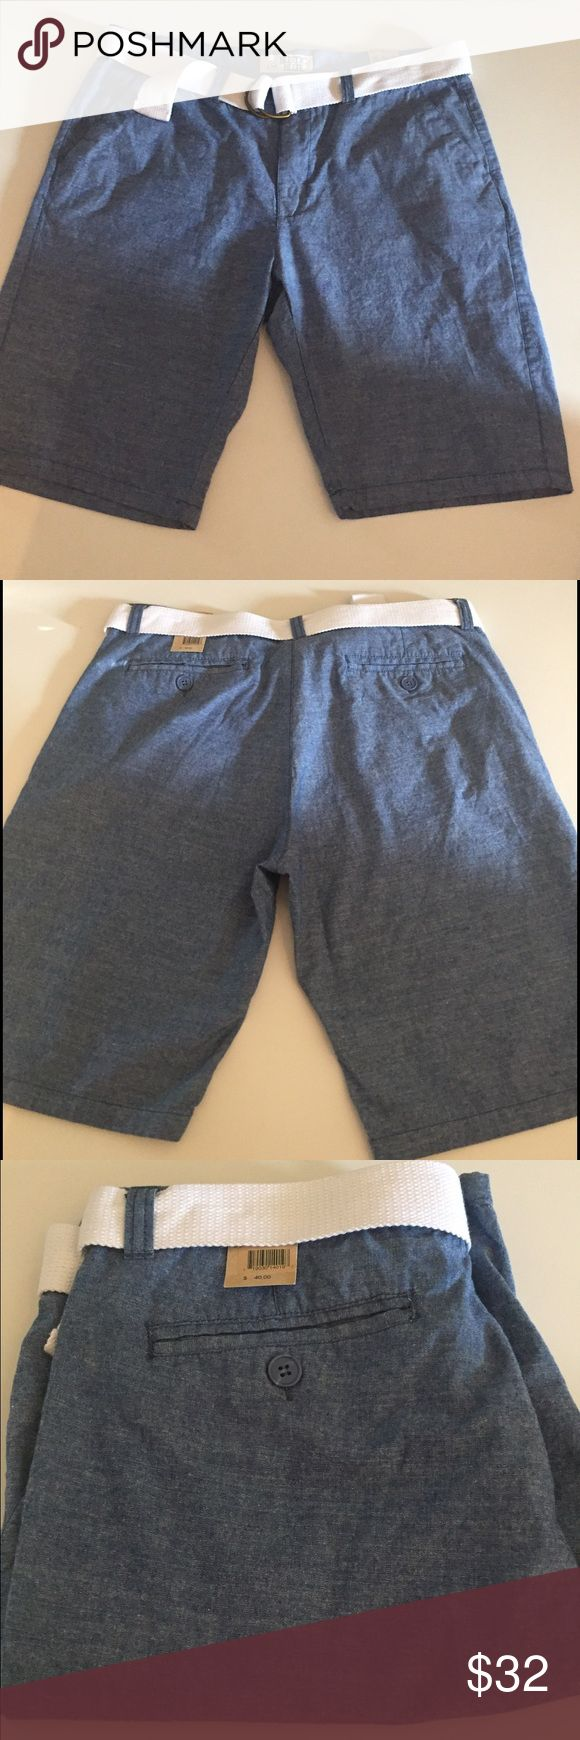 ✨1 day sale ✨NEW w/tags Rustic Blue Shorts w/Belt JUST LISTED: NEW w/tags Shorts w/Belt  Color: Blue  CONDITION: New With Tags   ❌Trades❌  ⚡️I ship lightening fast⚡️  🎉Discounts with bundles 🎉 Rustic Blue Shorts